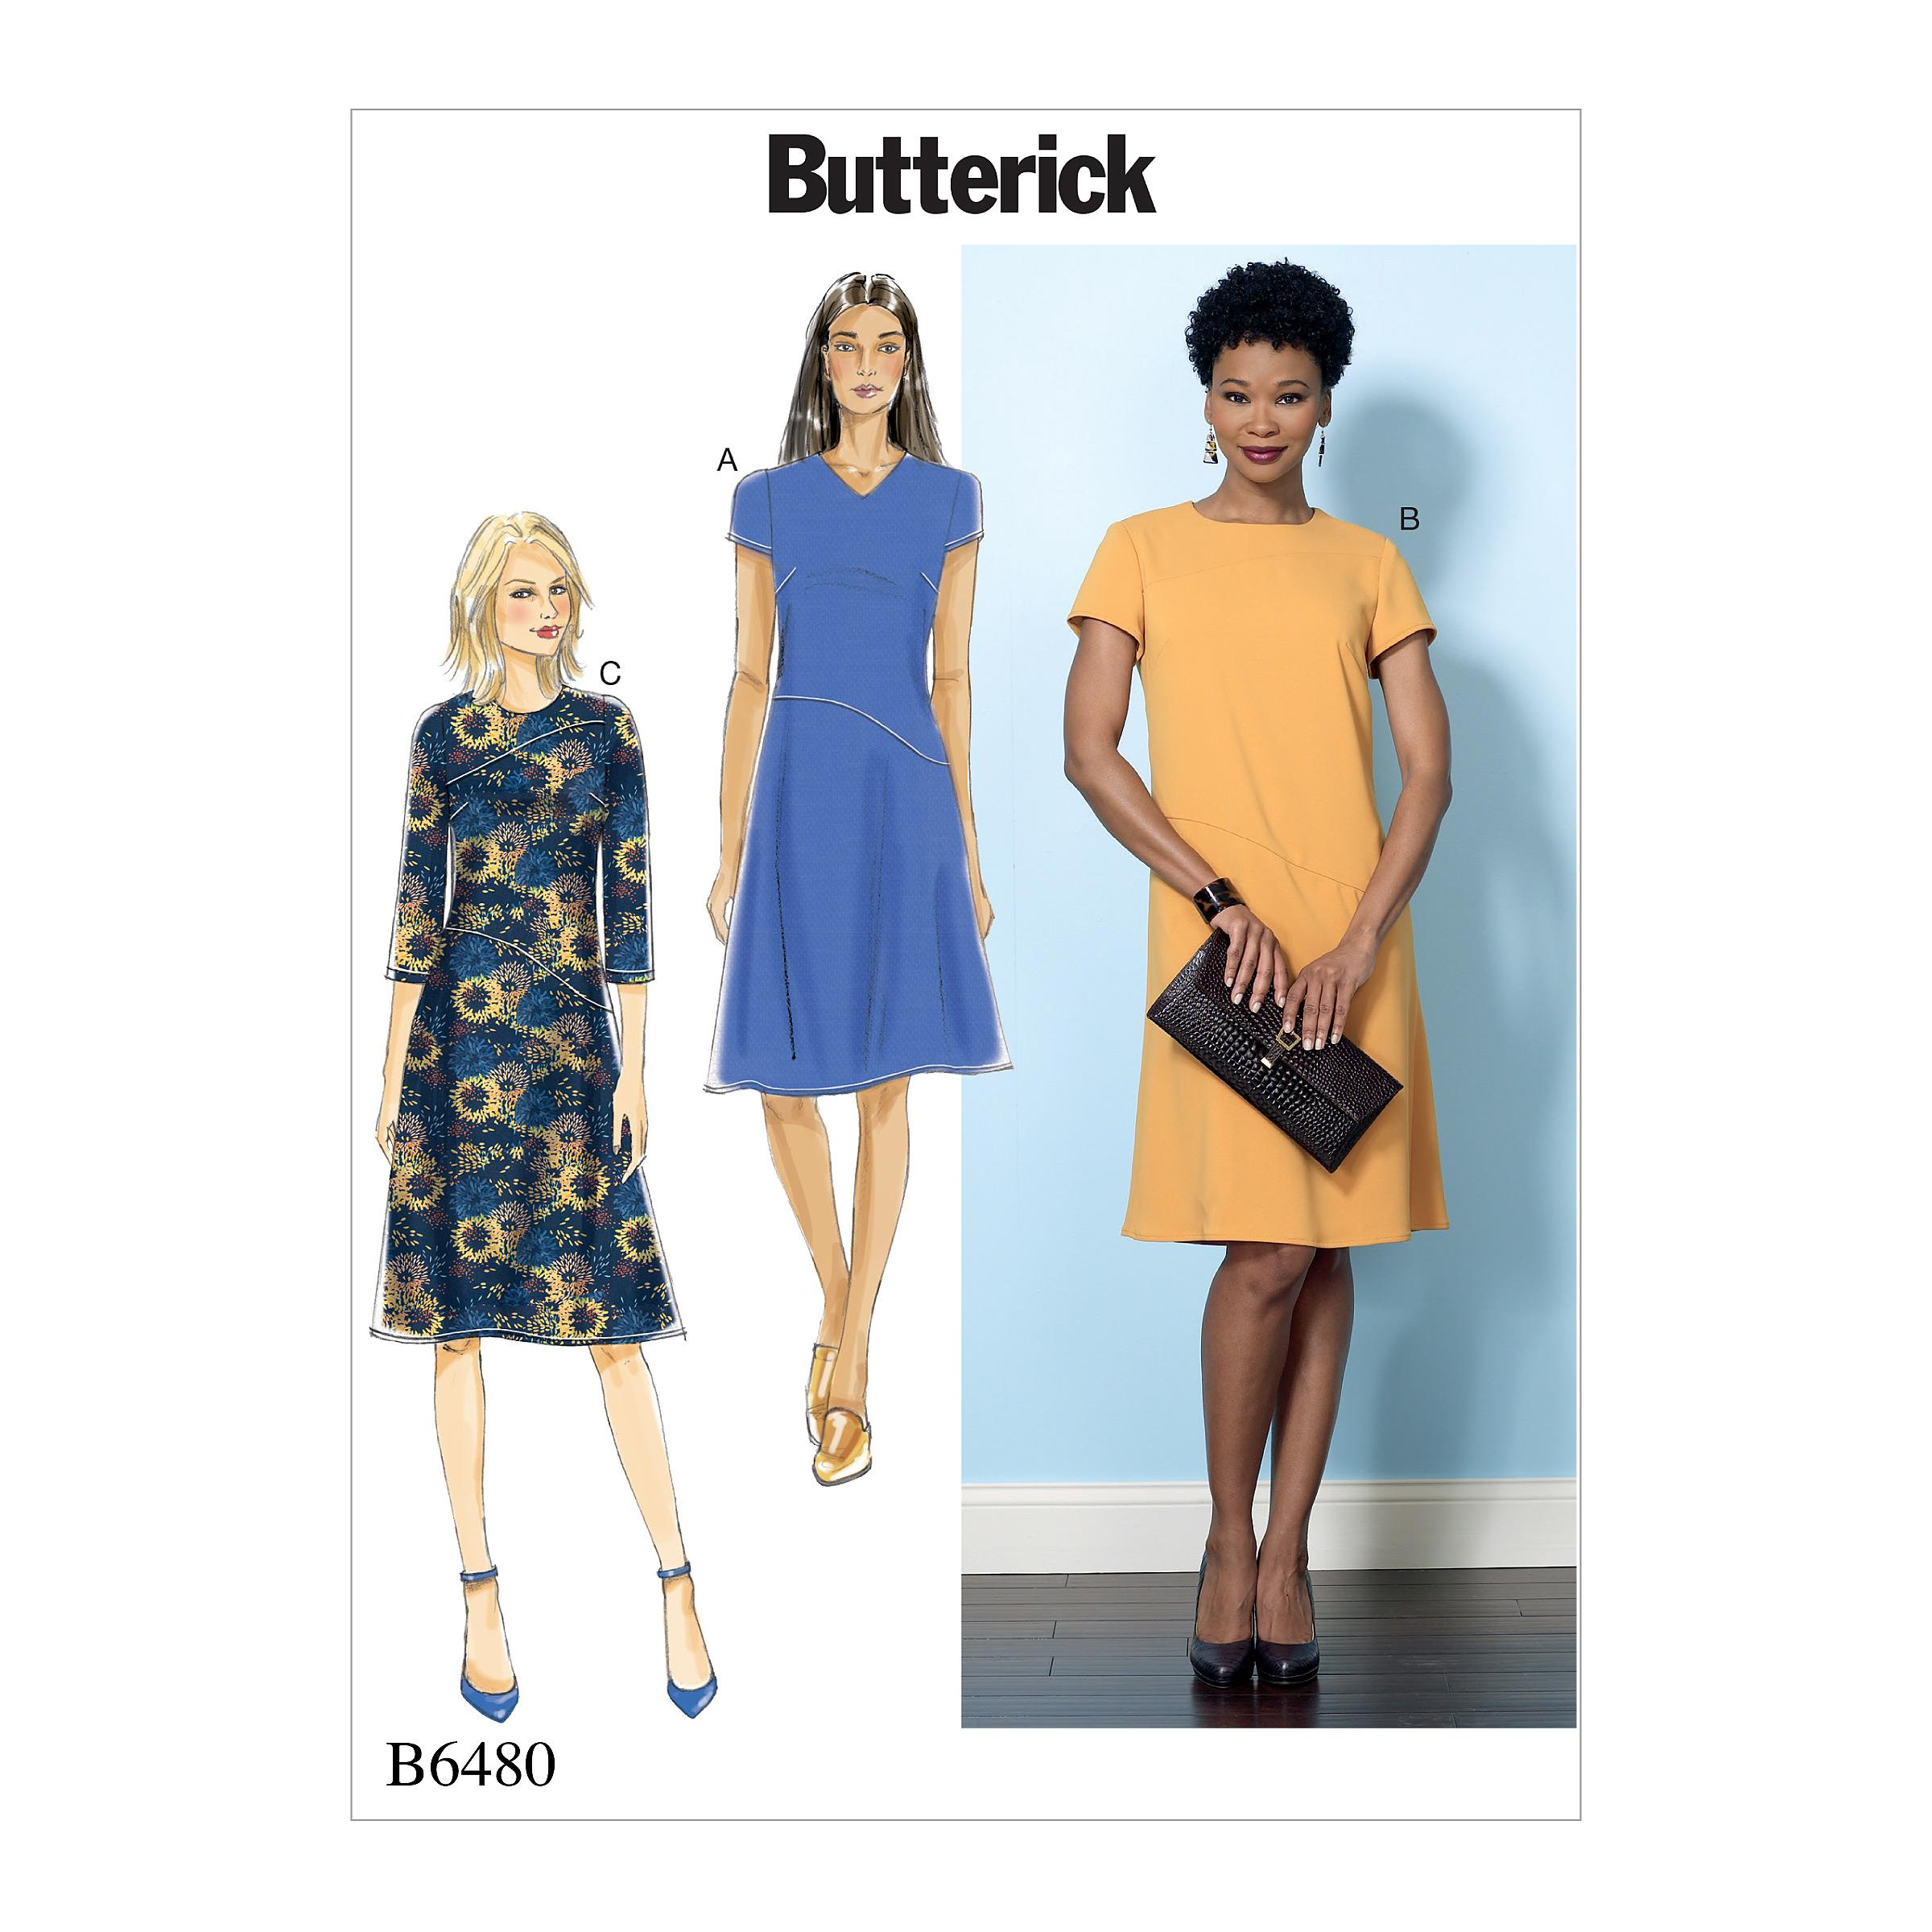 Butterick B6480 Misses' Fitted Dresses with Hip Detail, Neck and Sleeve Variations